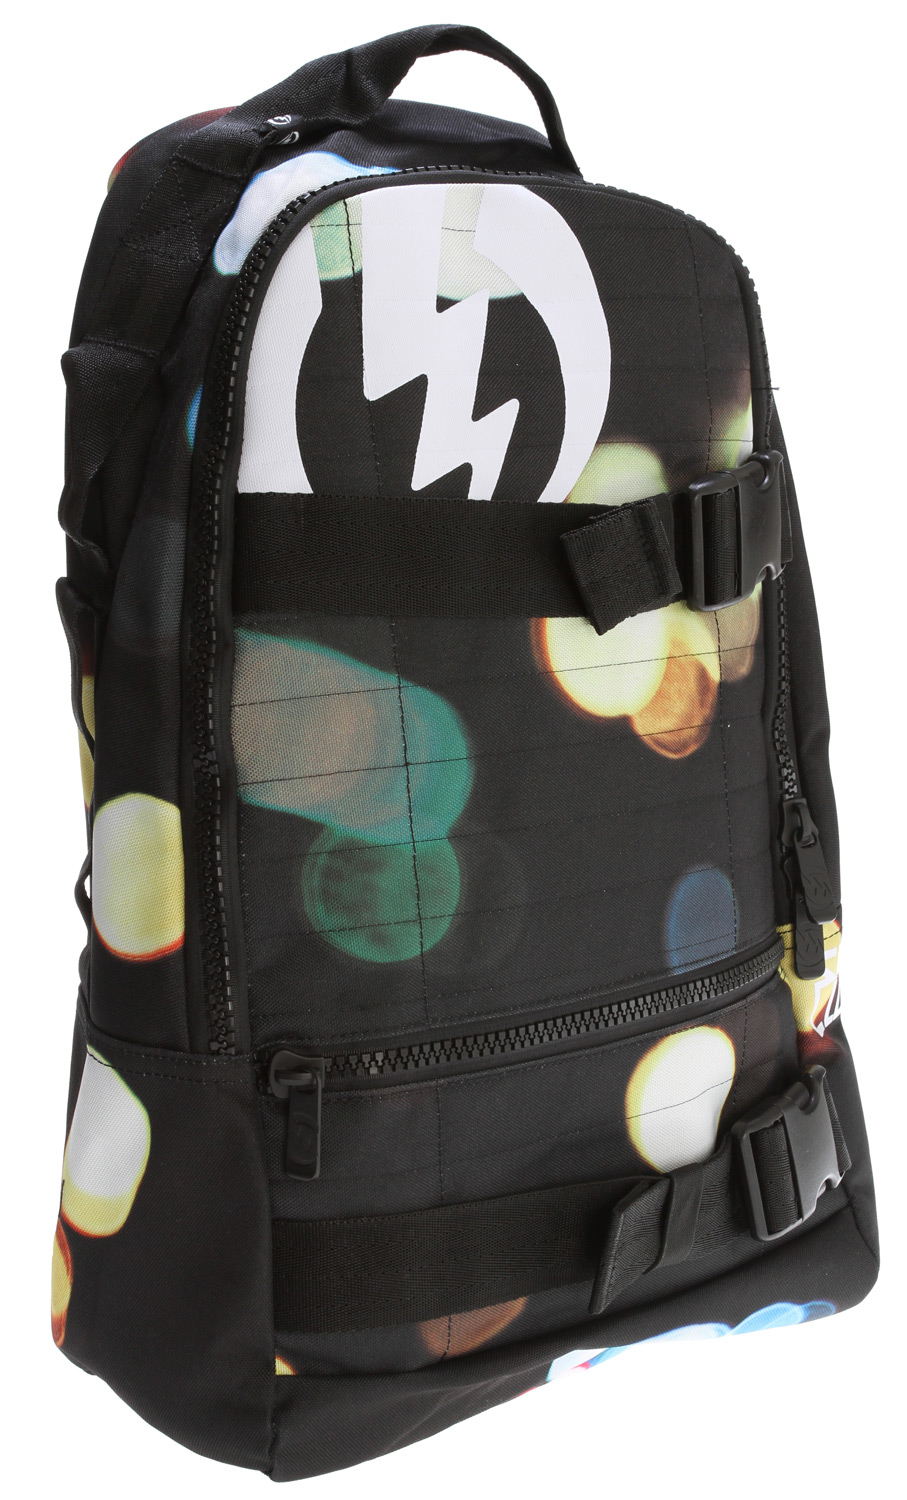 "Skateboard Key Features of the Electric MK2 Backpack Army: Skate Pack One Main Compartment With Interior Organizer Front Pocket 100% Polyester Dimensions: 18"" X 11"" X 7"" - $28.95"